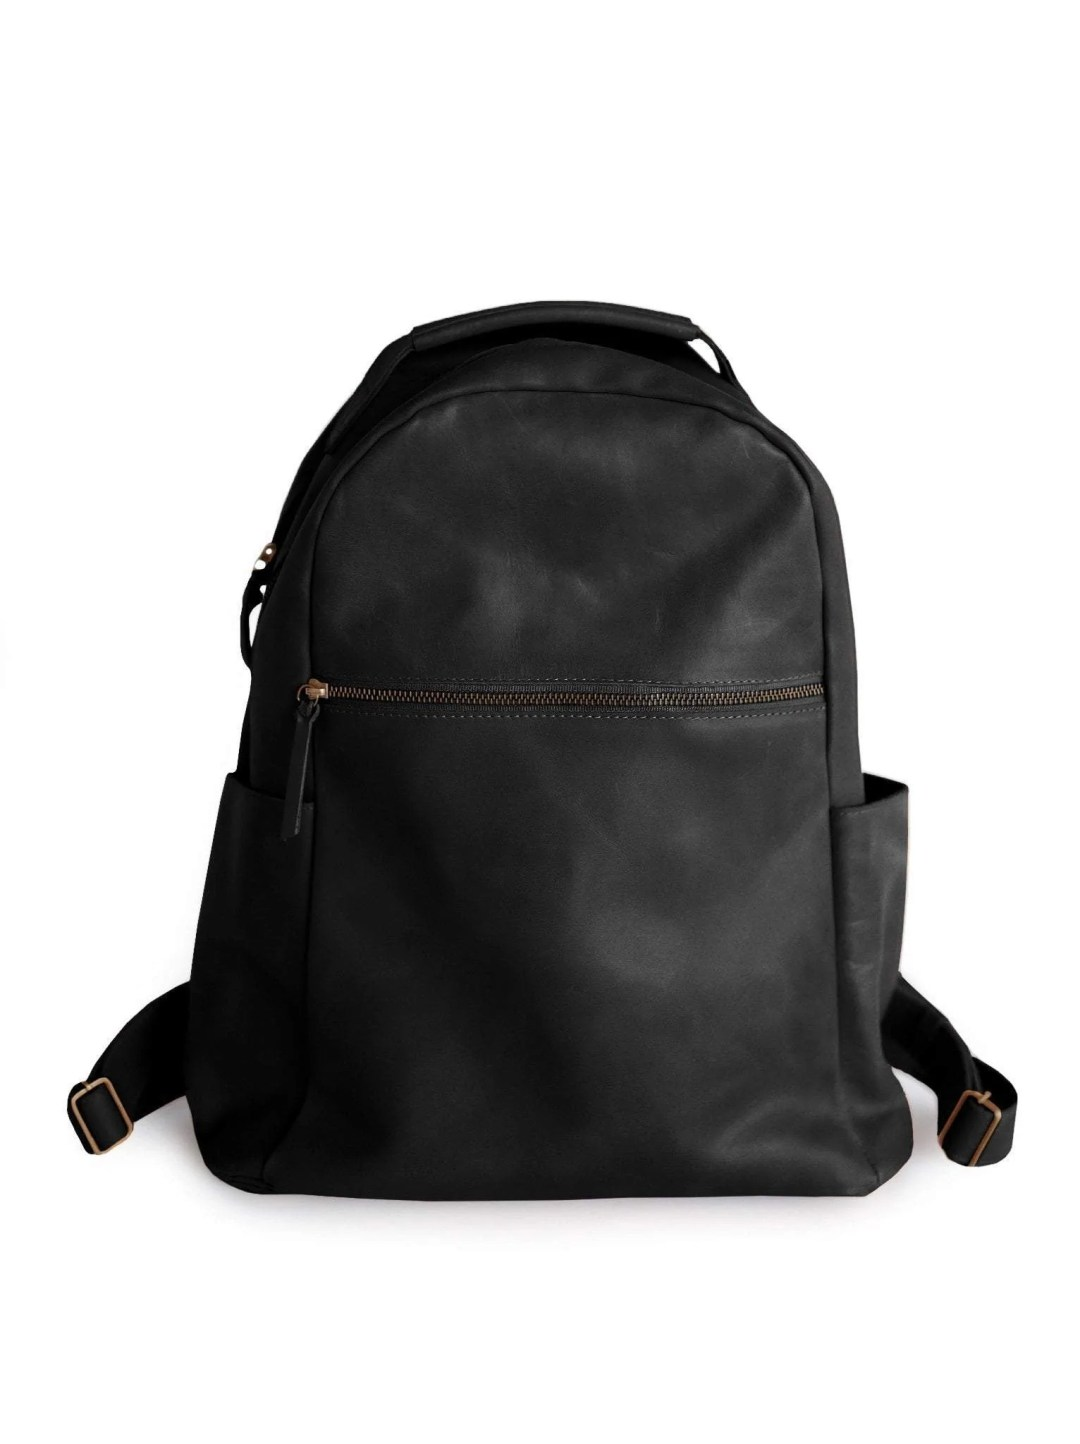 Black leather Mayte Backpack from ABLE fashion. 238 dollars.